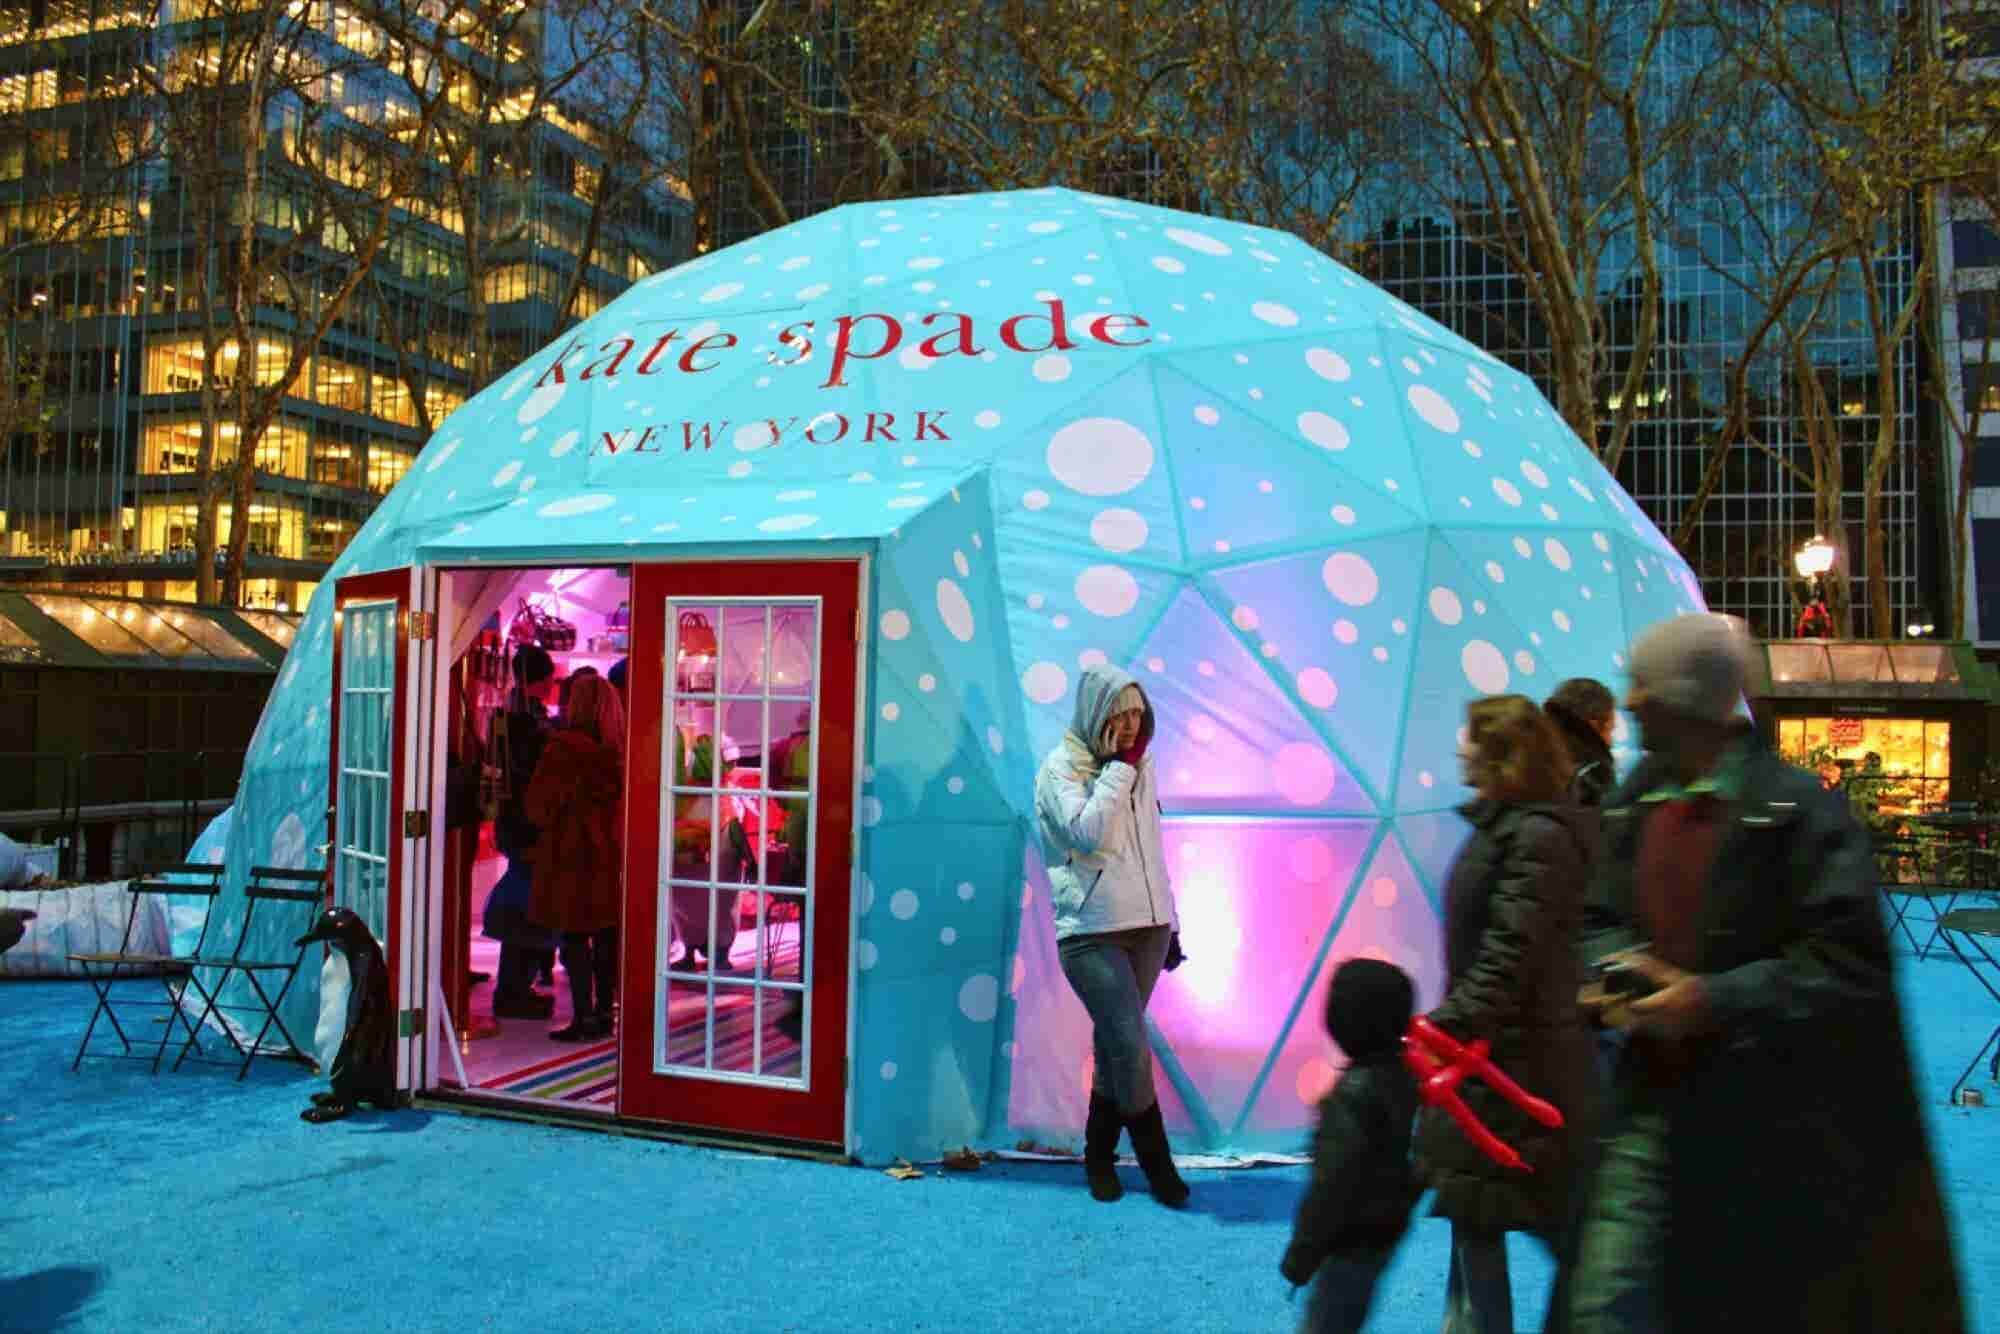 Companies Turn to Pop-Up Events and Stores to Increase Brand Awareness